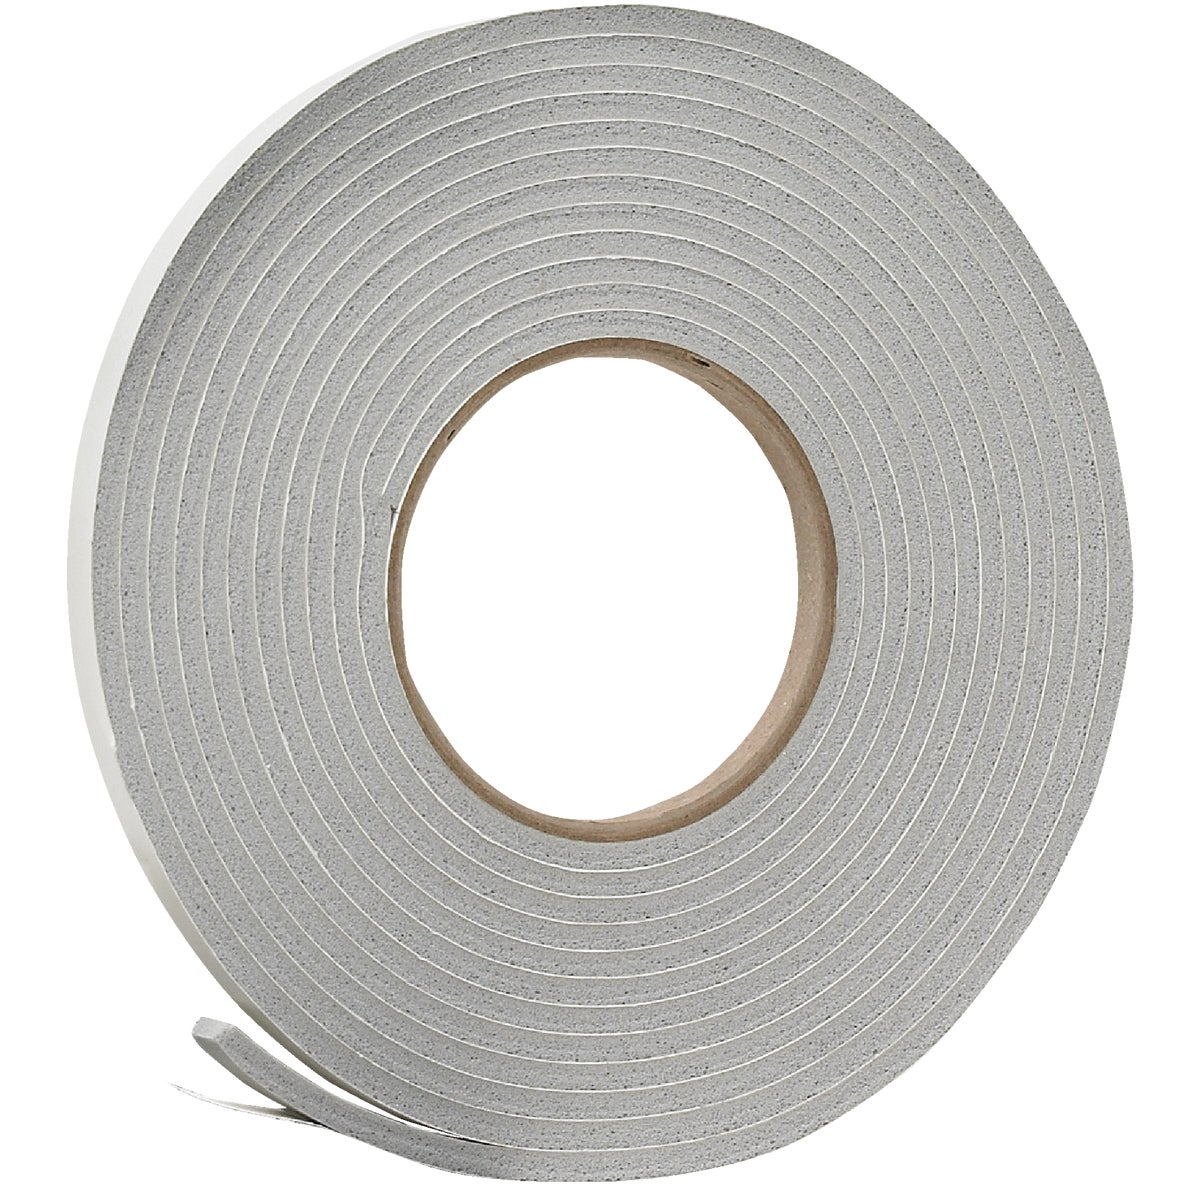 "3/8X3/16""X17' PVC TAPE - V443HDI by Thermwell Prods Co"